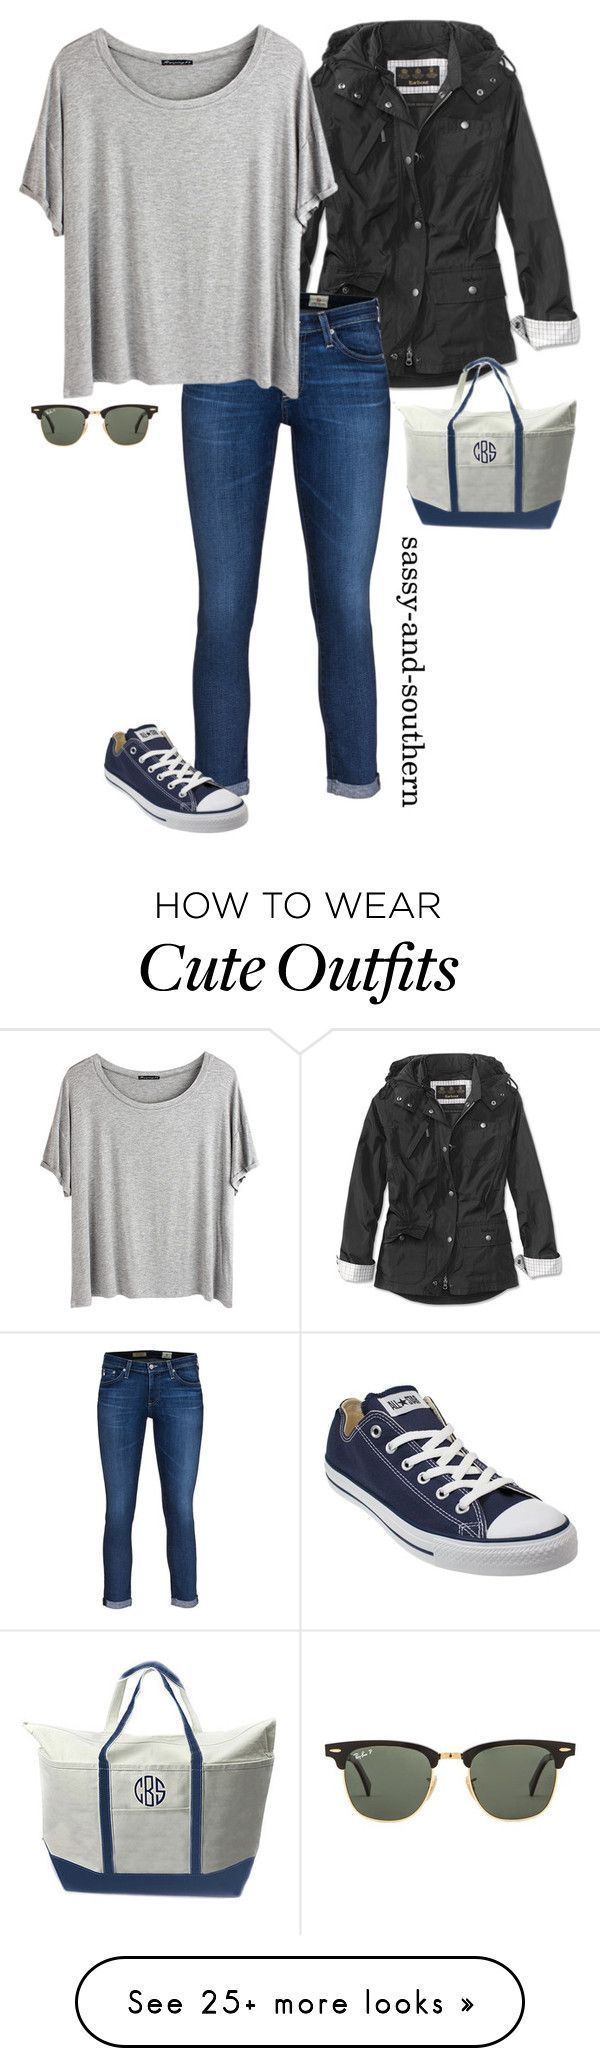 cute fall outfit by sassy-and-southern on Polyvore featuring Barbour, AG Adriano Goldschmied, Chicnova Fashion, Ray-Ban, CB Station, Converse, converse, rayban and sassysouthernfall